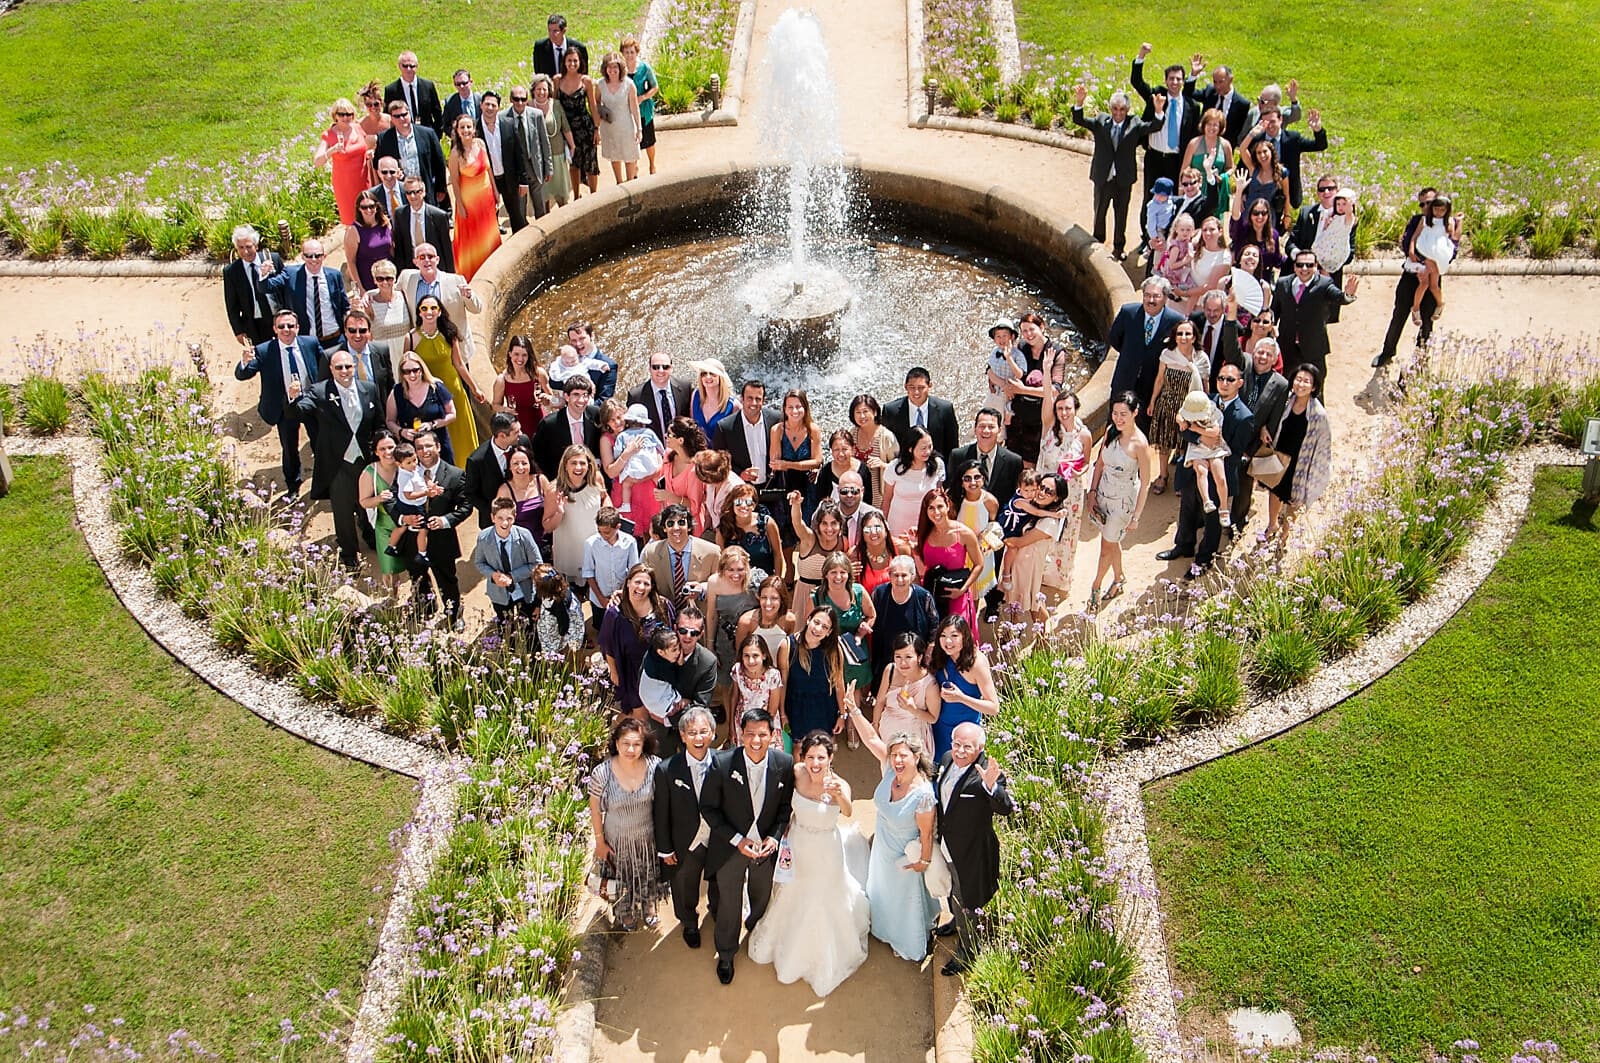 Happy wedding group shot at a Palácio do Freixo Destination Wedding